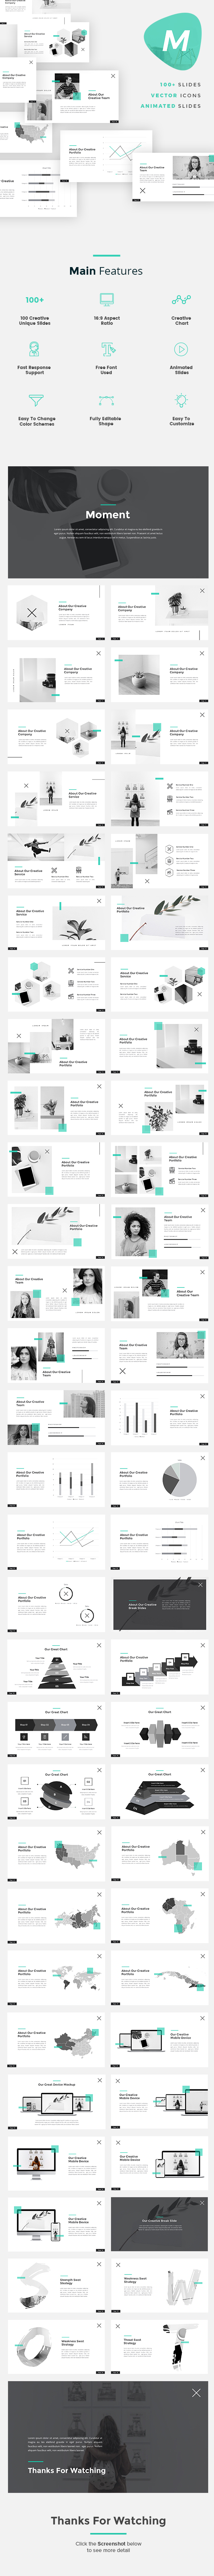 Moment Minimalist Powerpoint Template By Suavedigital Graphicriver